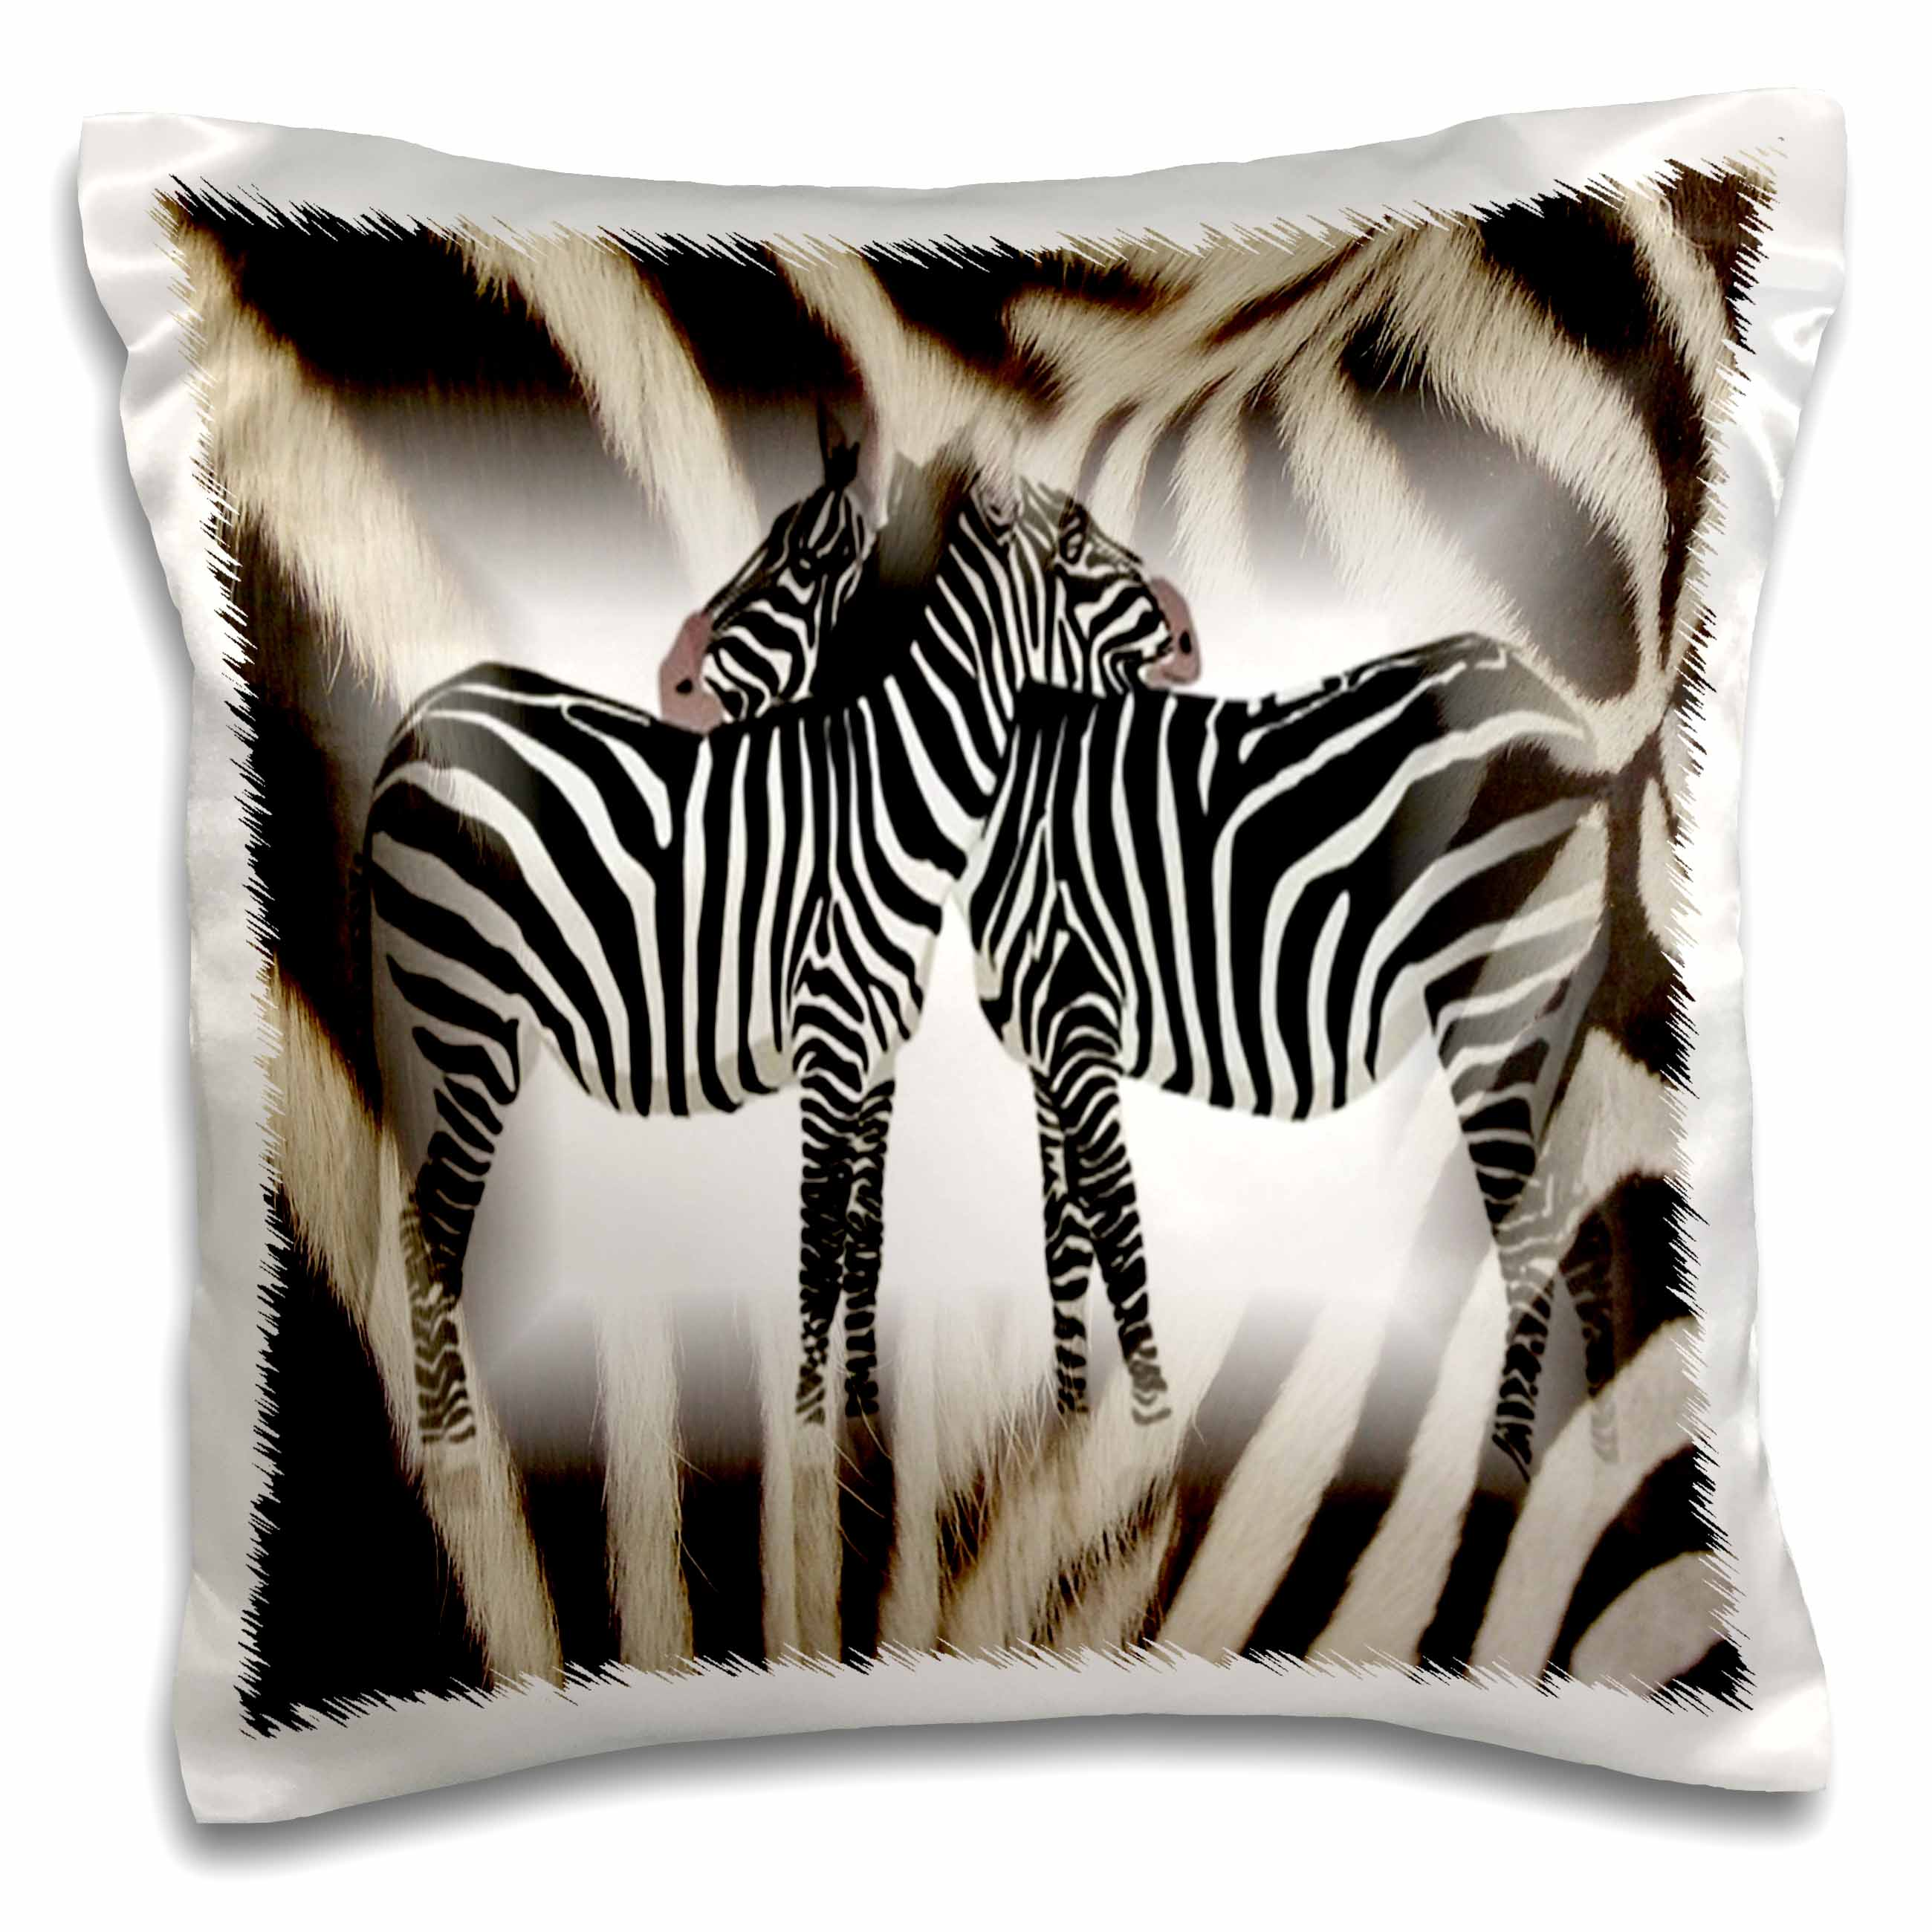 3dRose 2 Hugging Zebras On Real Zebra Fur, Pillow Case, 16 by 16-inch